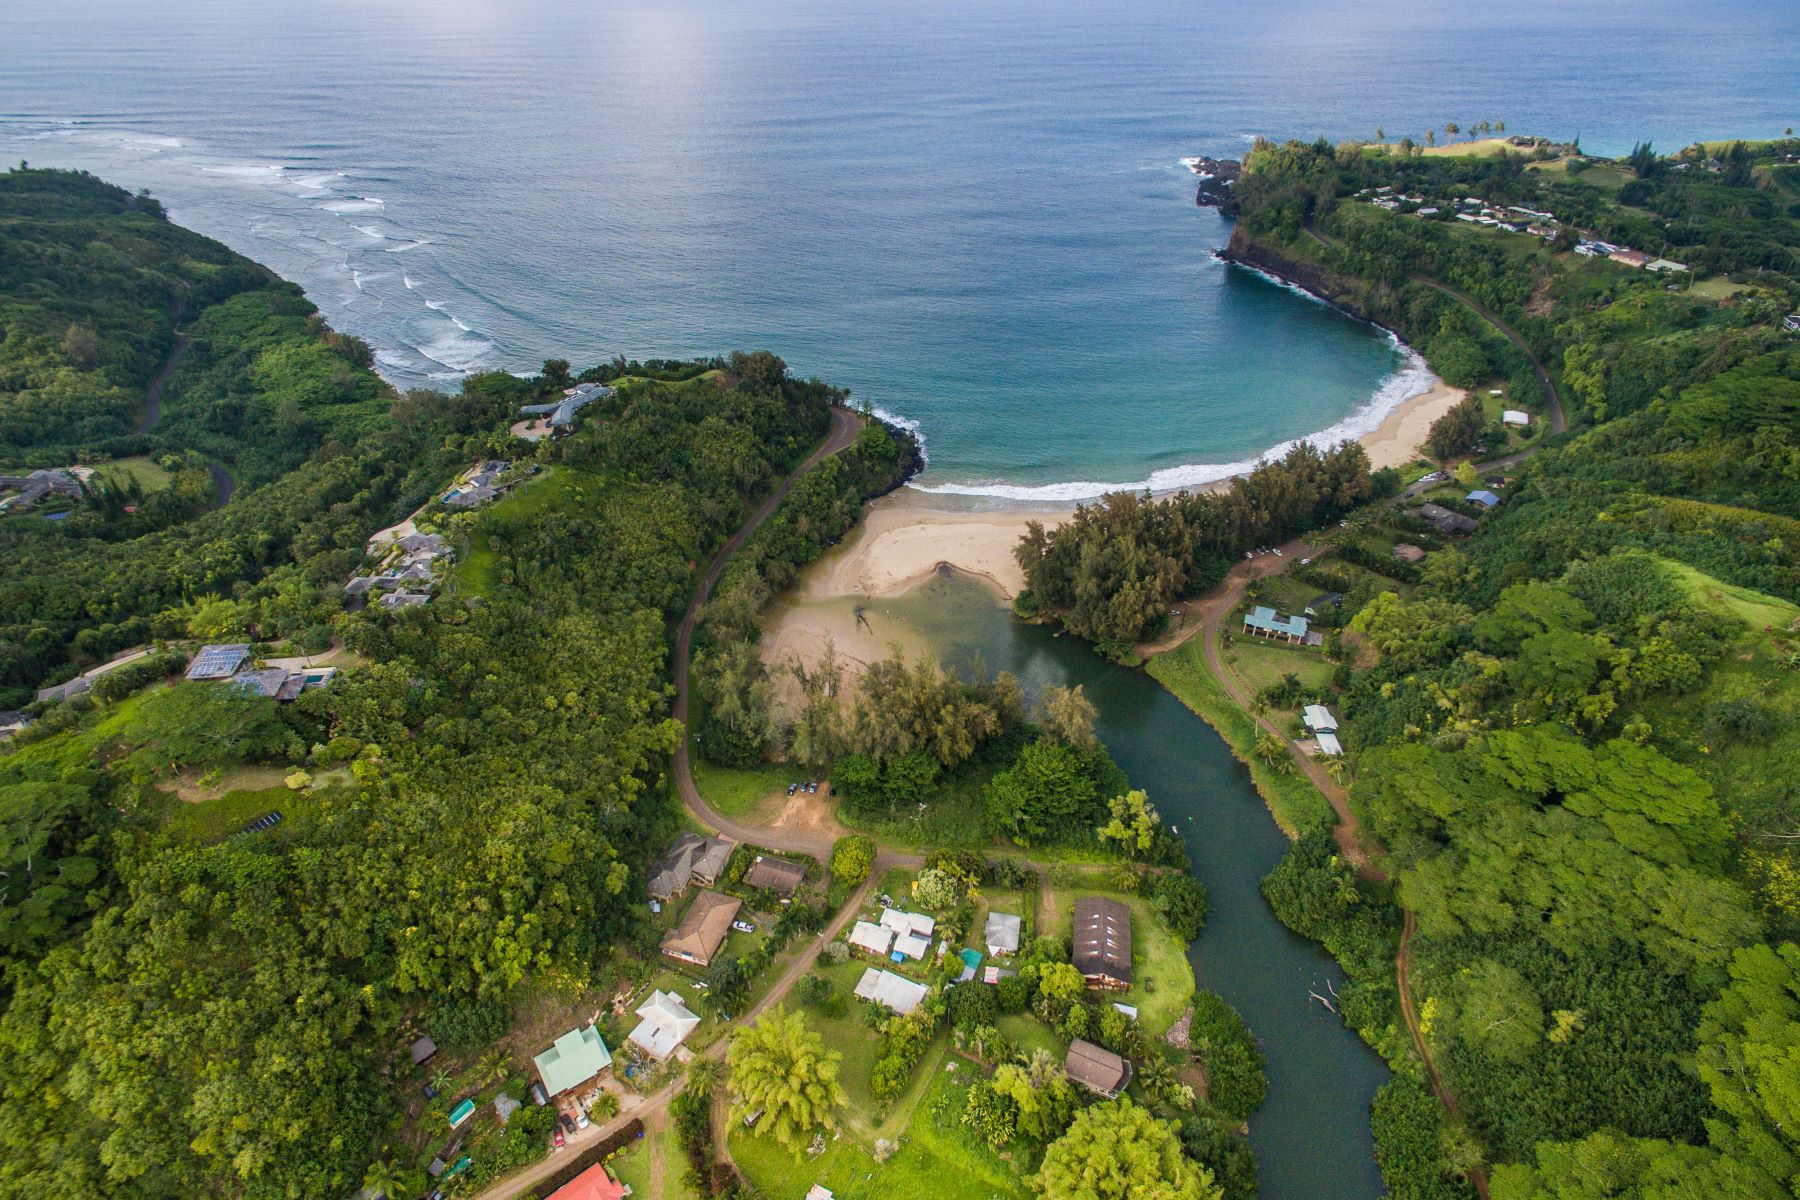 Частный односемейный дом для того Продажа на Beautiful Prime Kalihiwai Valley Property Just Steps to River and Bay 3167 Kalihiwai Road #B Kilauea, Гавайи 96754 Соединенные Штаты